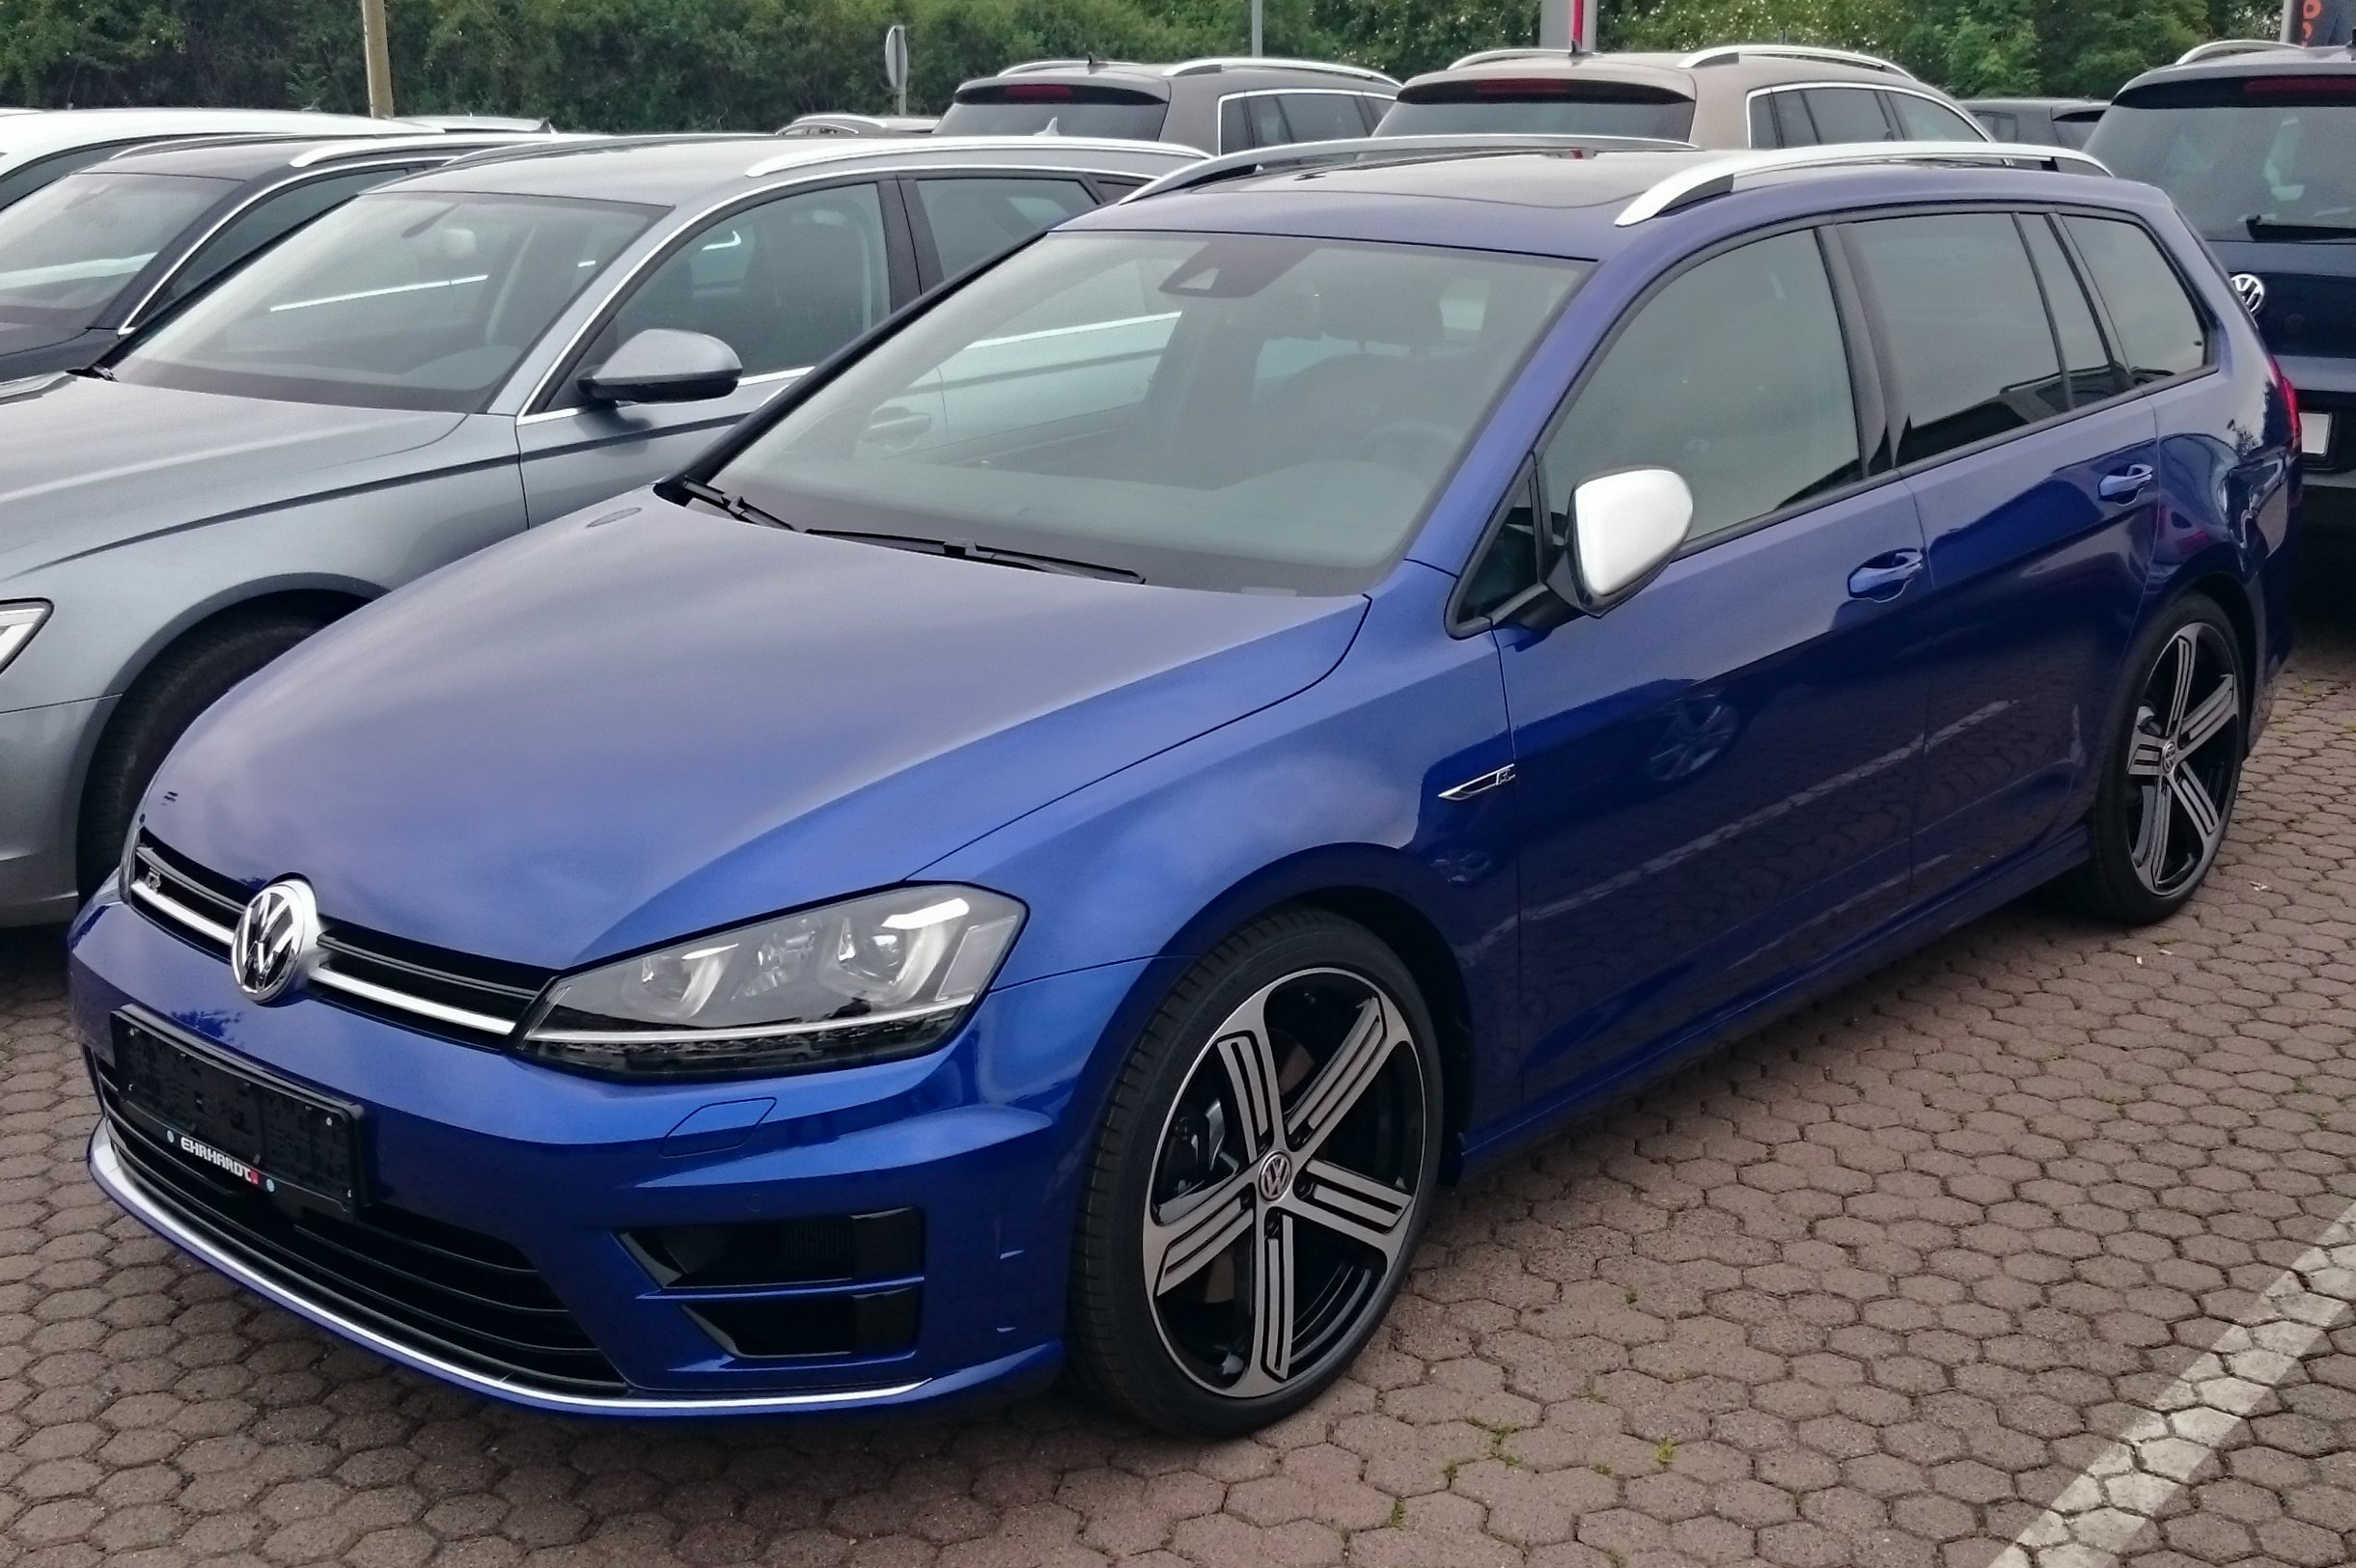 datei vw golf vii r variant 4motion 2 0 tsi dsg jpg wikipedia. Black Bedroom Furniture Sets. Home Design Ideas